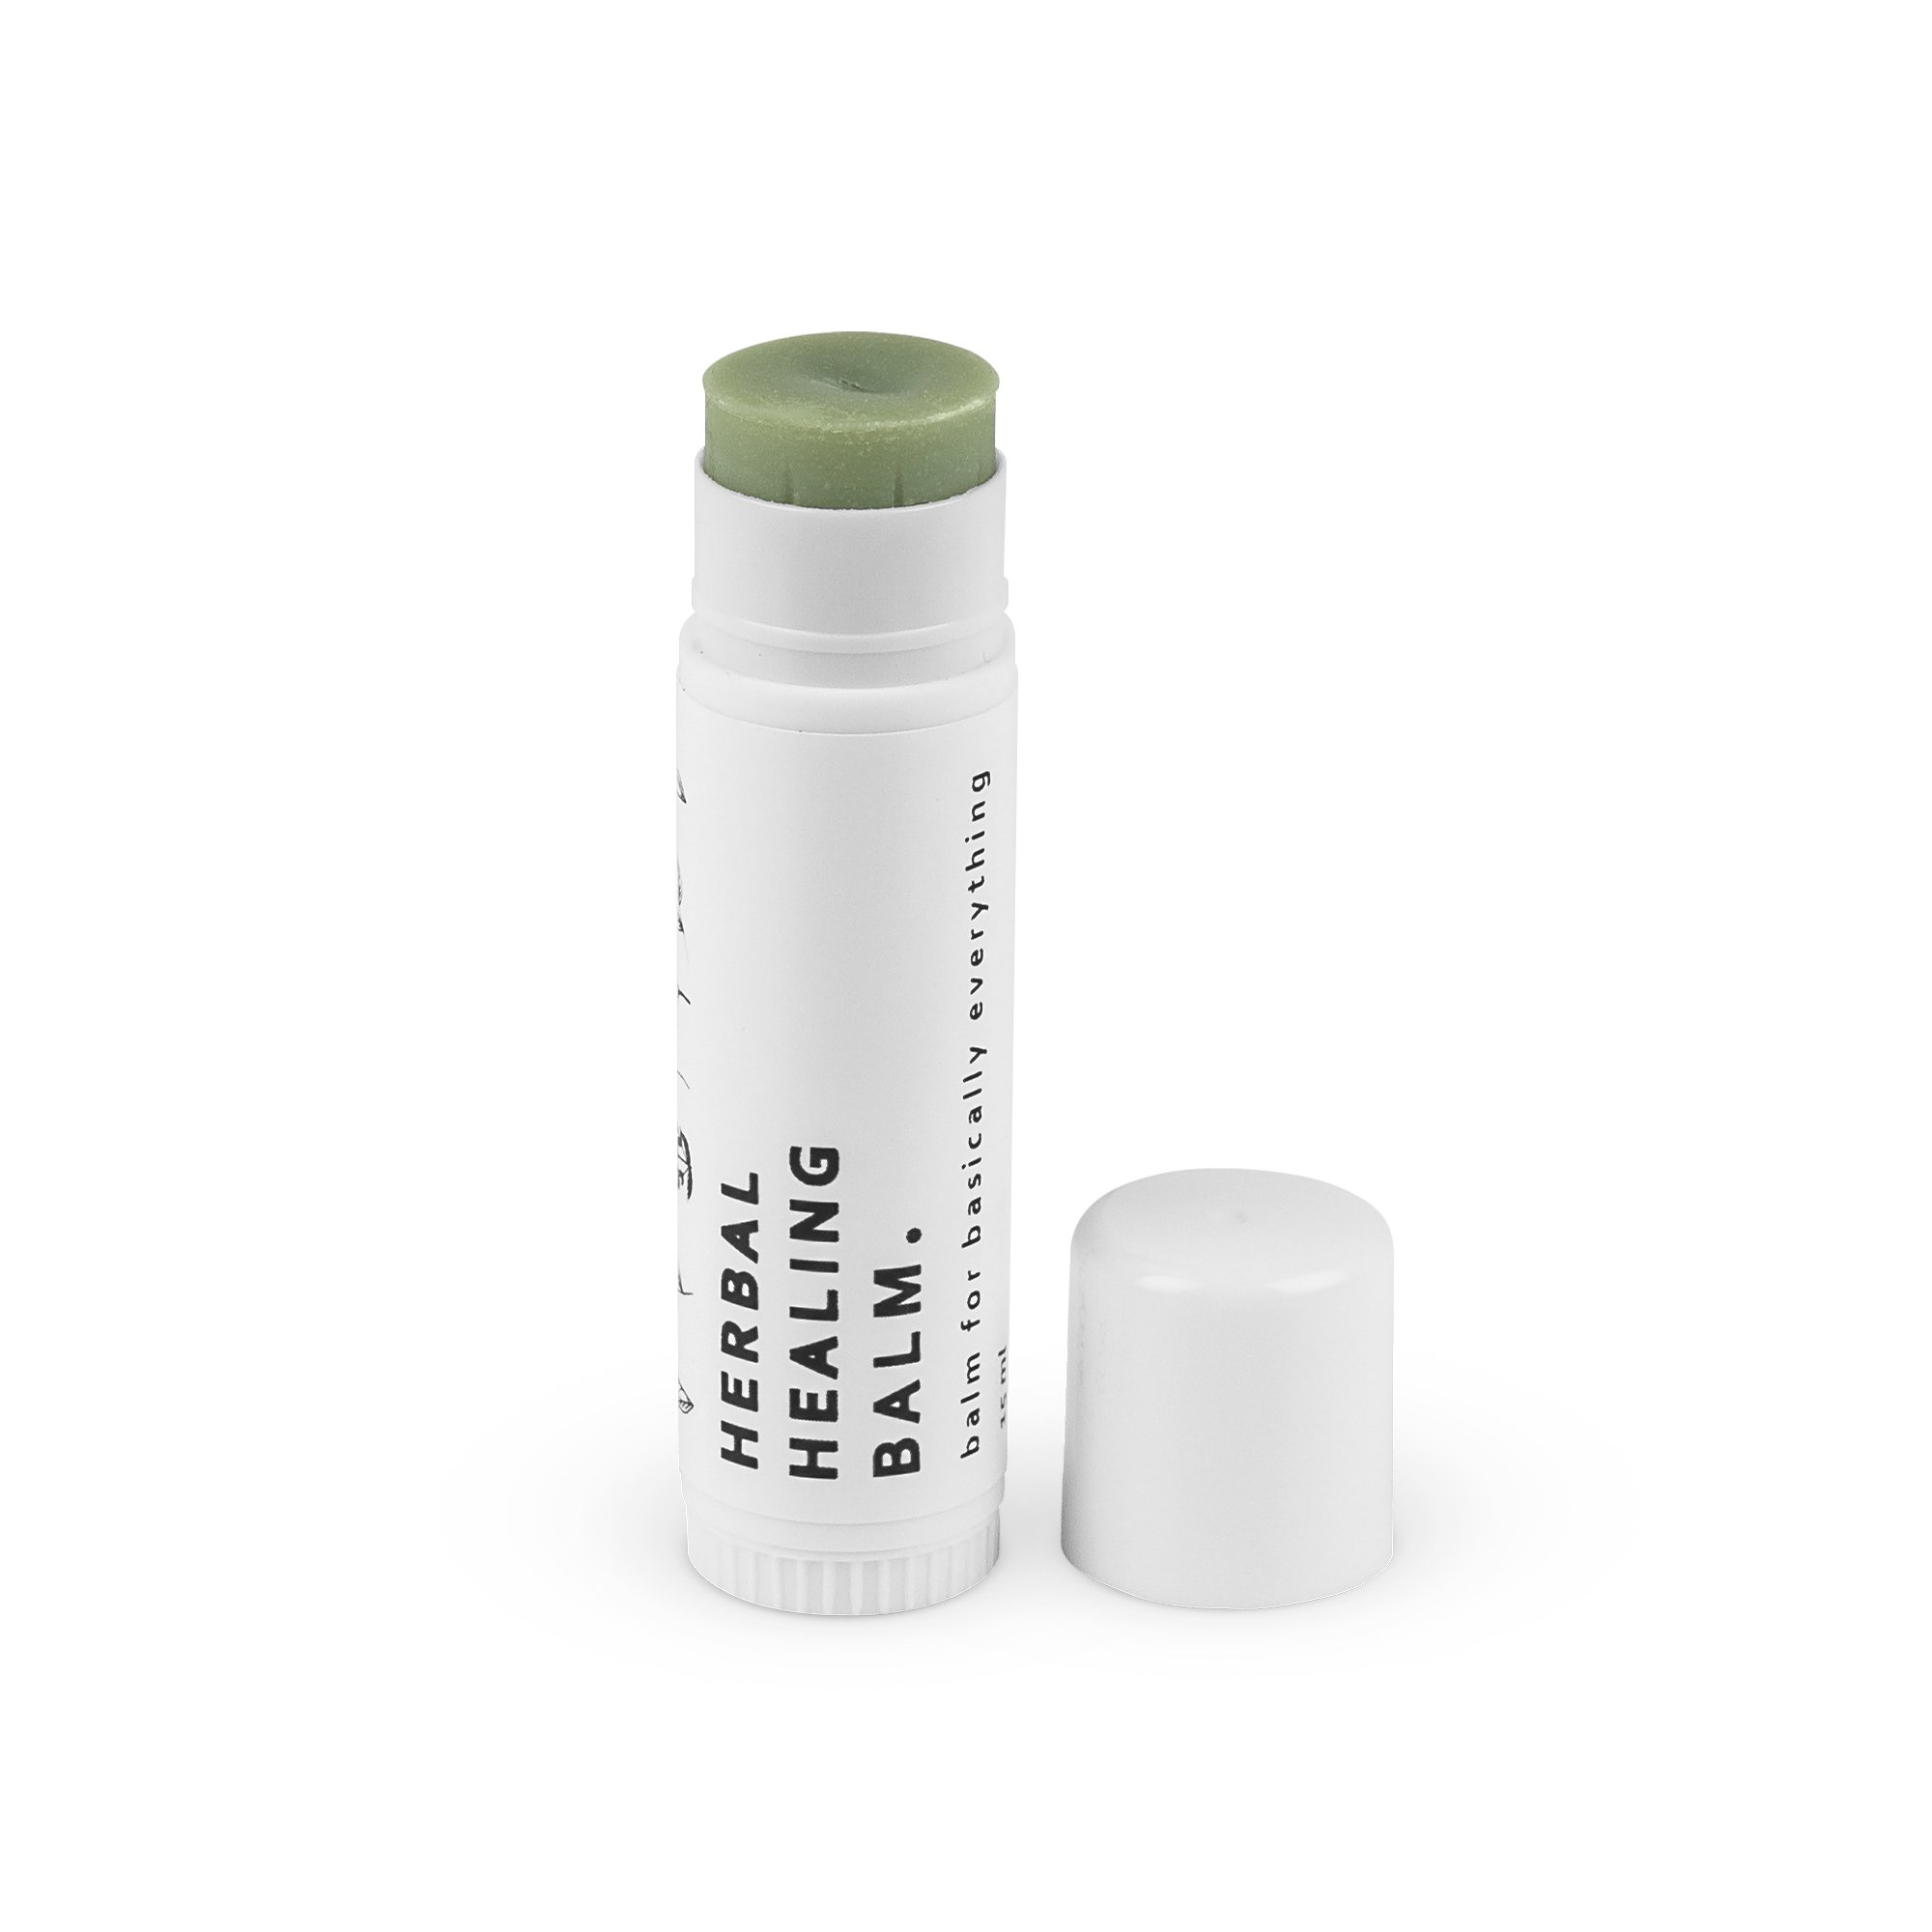 abbey lab herbal healing balm